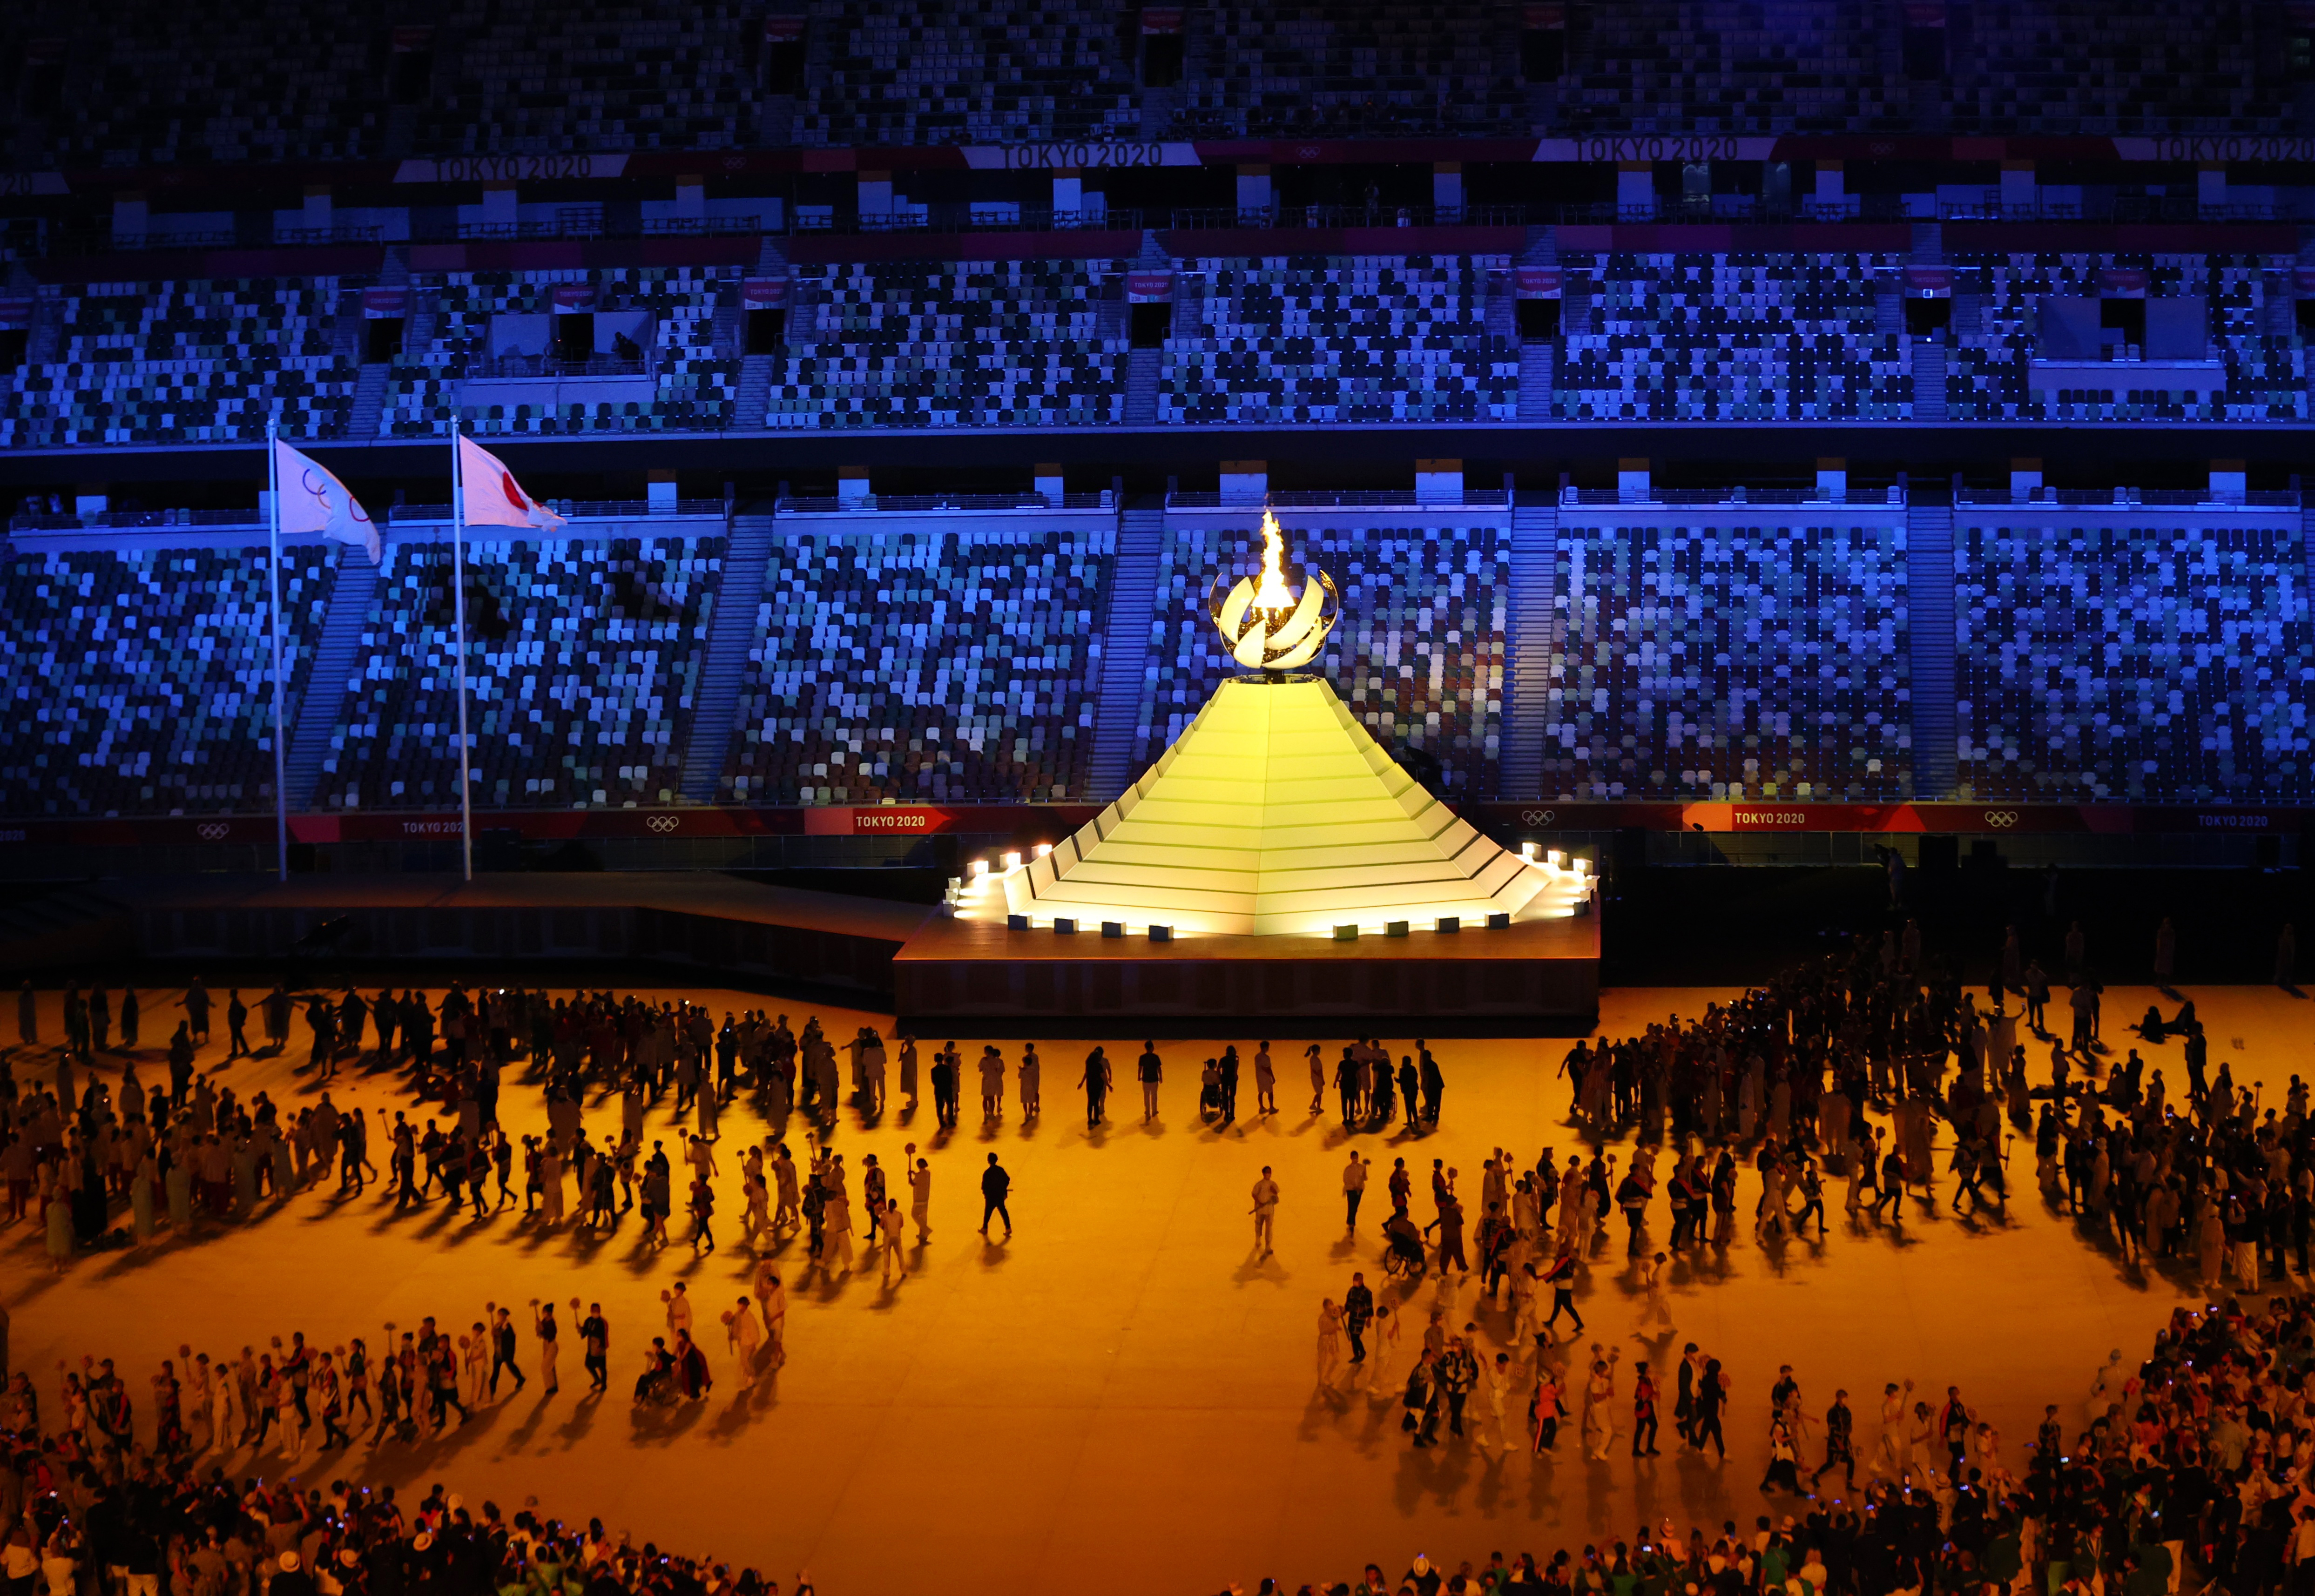 Tokyo 2020 Olympics - The Tokyo 2020 Olympics Opening Ceremony - Olympic Stadium, Tokyo, Japan - July 23, 2021. The Olympic cauldron is lit by Naomi Osaka during the opening ceremony REUTERS/Marko Djurica